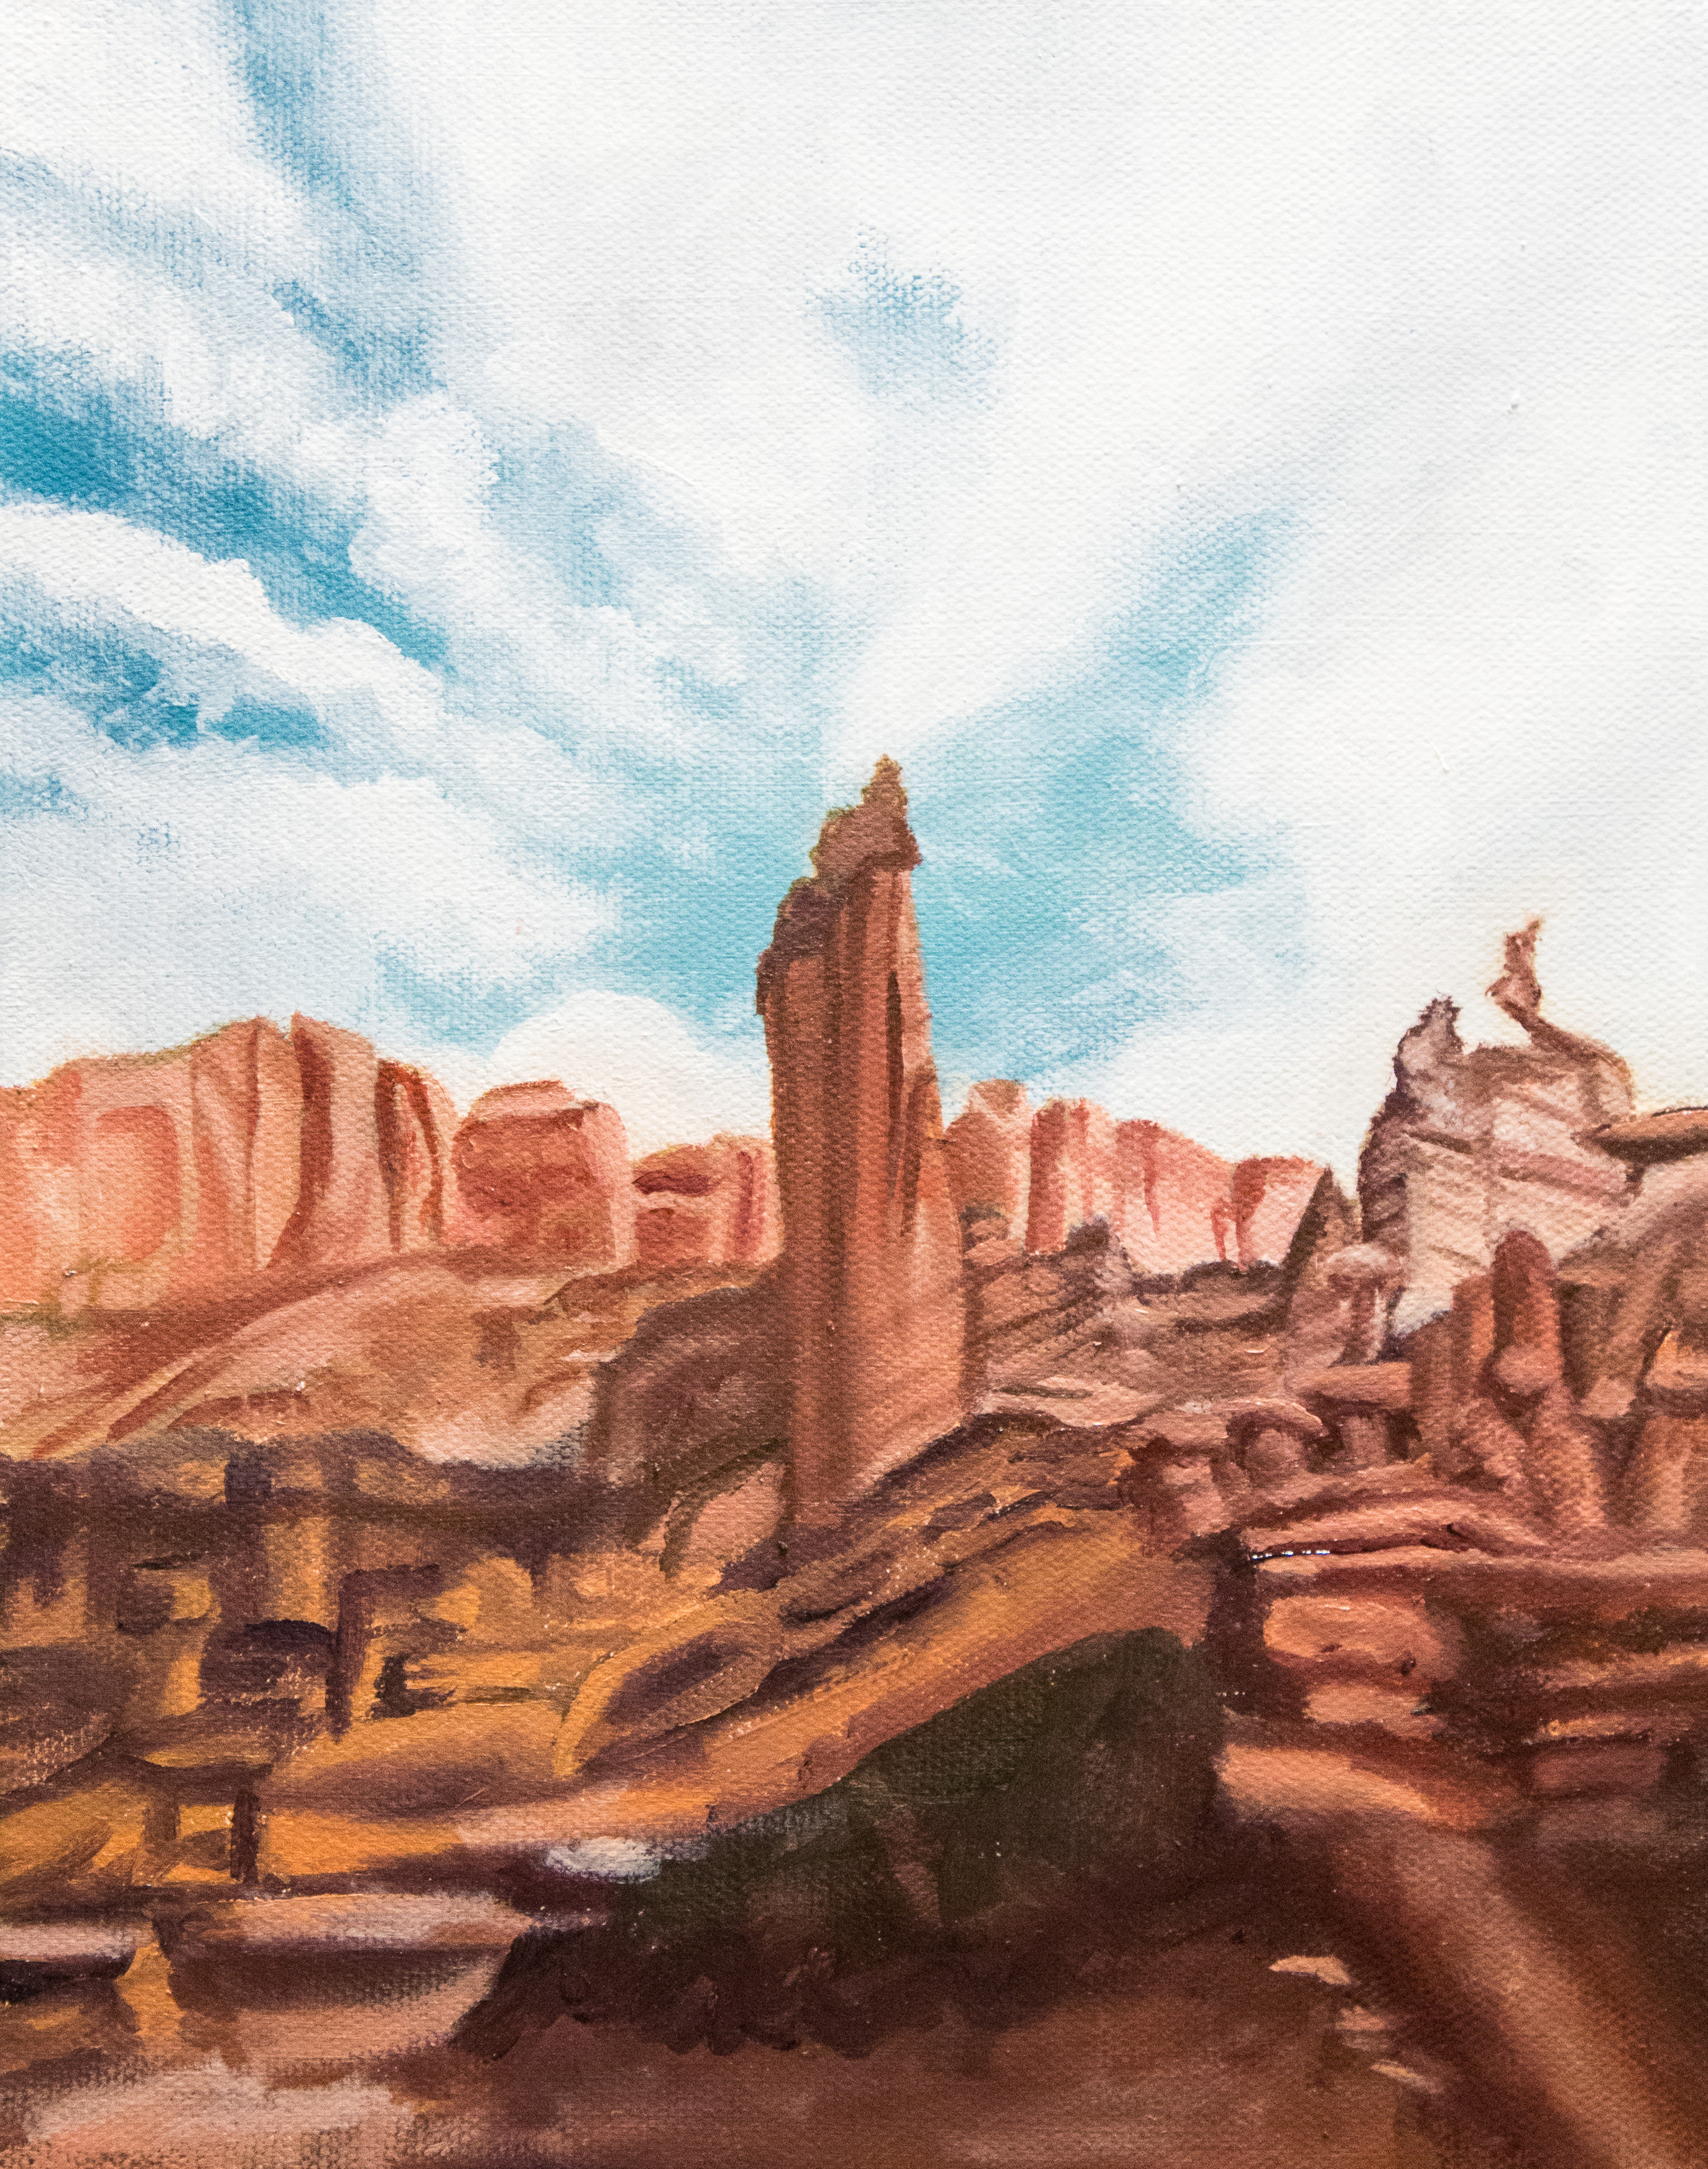 Fisher Towers Oil Painting In Progress by Amber Honour